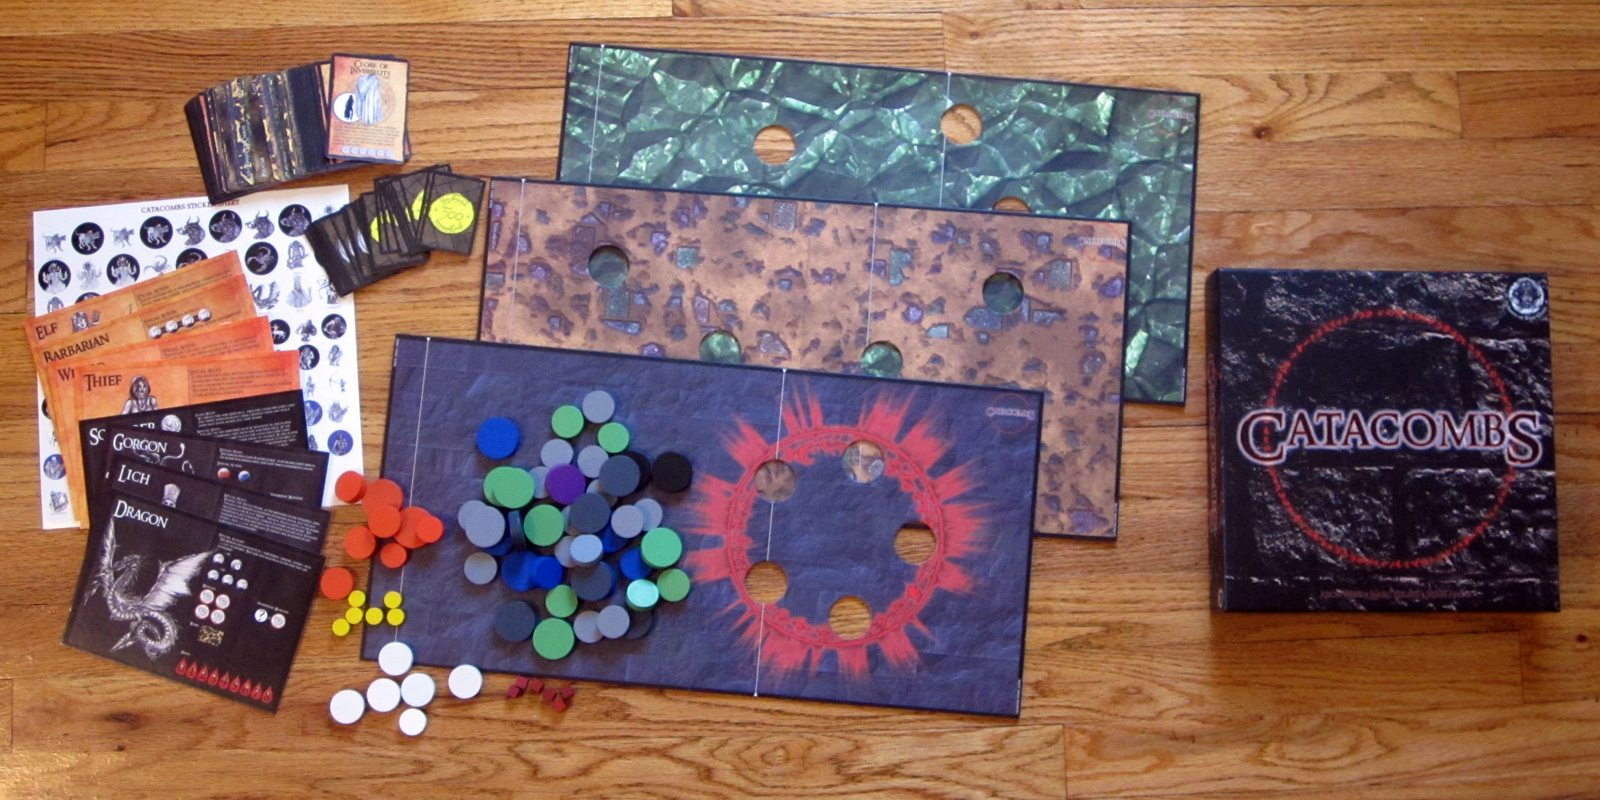 Catacombs components